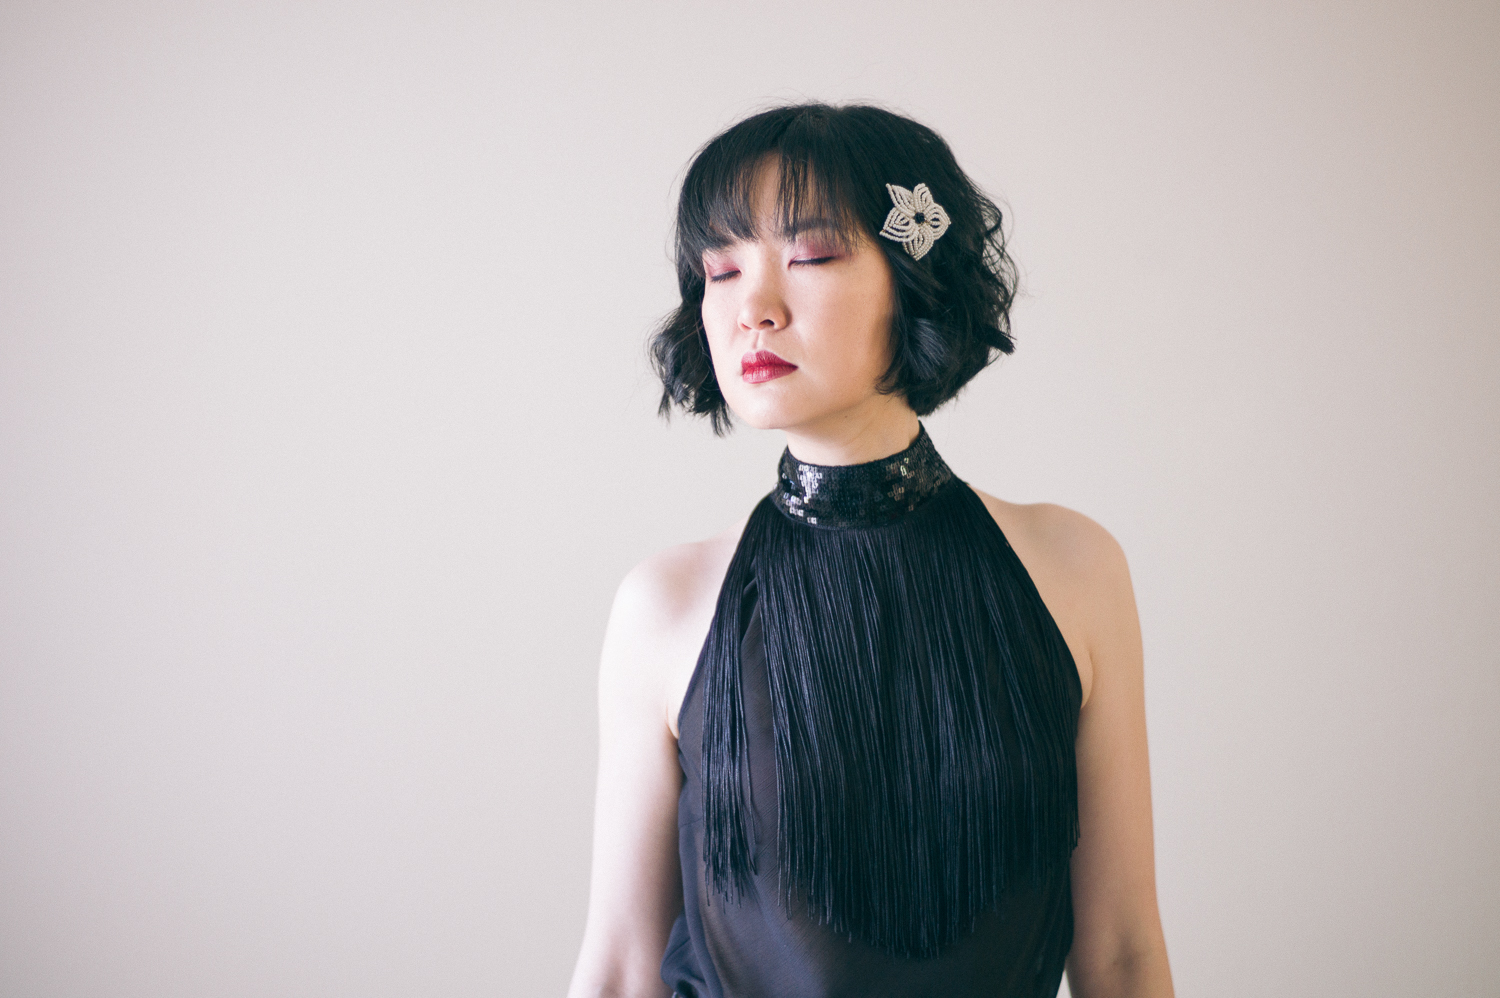 Style: DIY Halter Top with Fringe, Sequin, Lace Embellishments - DIY Fashion | Fafafoom.com